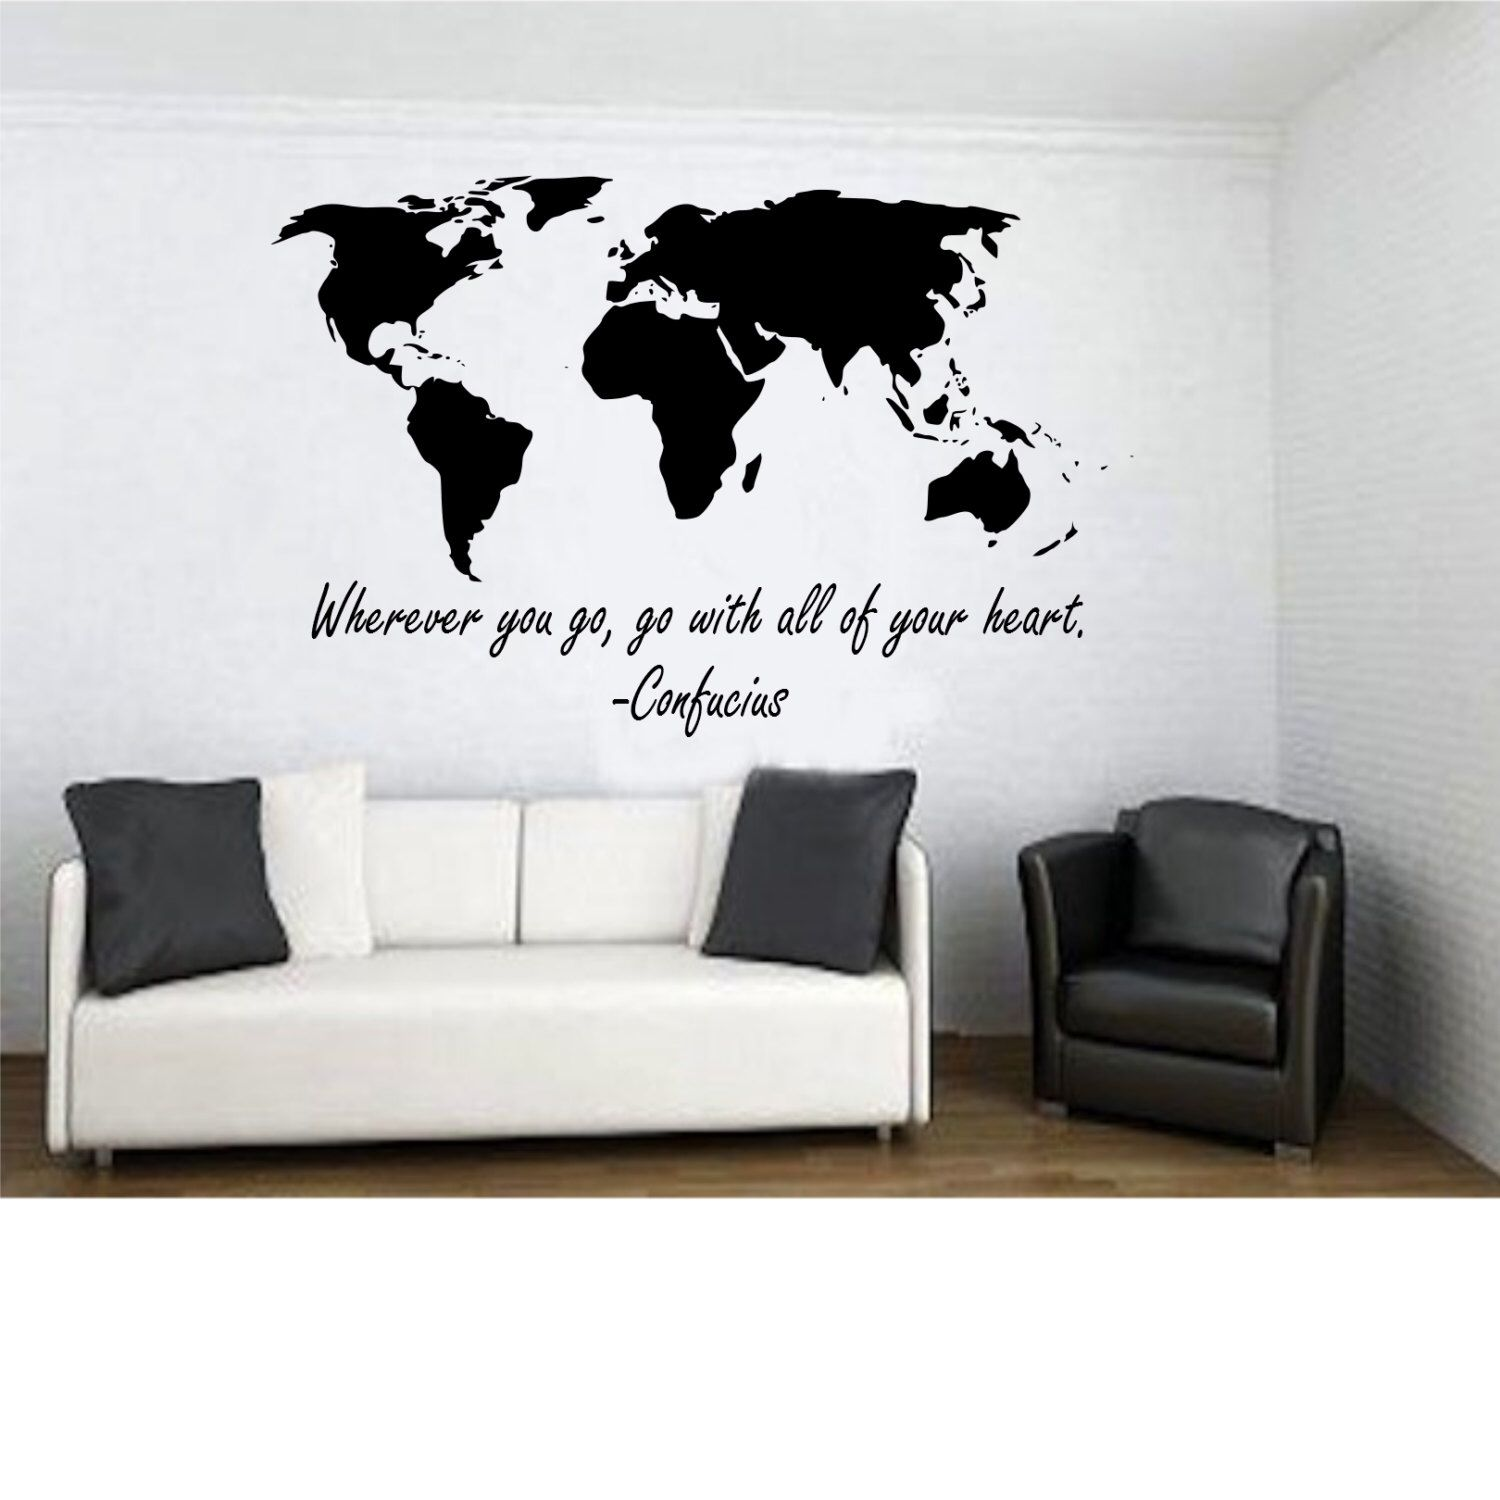 World map with wherever you go go with all of your heart confucius world map with wherever you go go with all of your heart confucius quote gumiabroncs Gallery